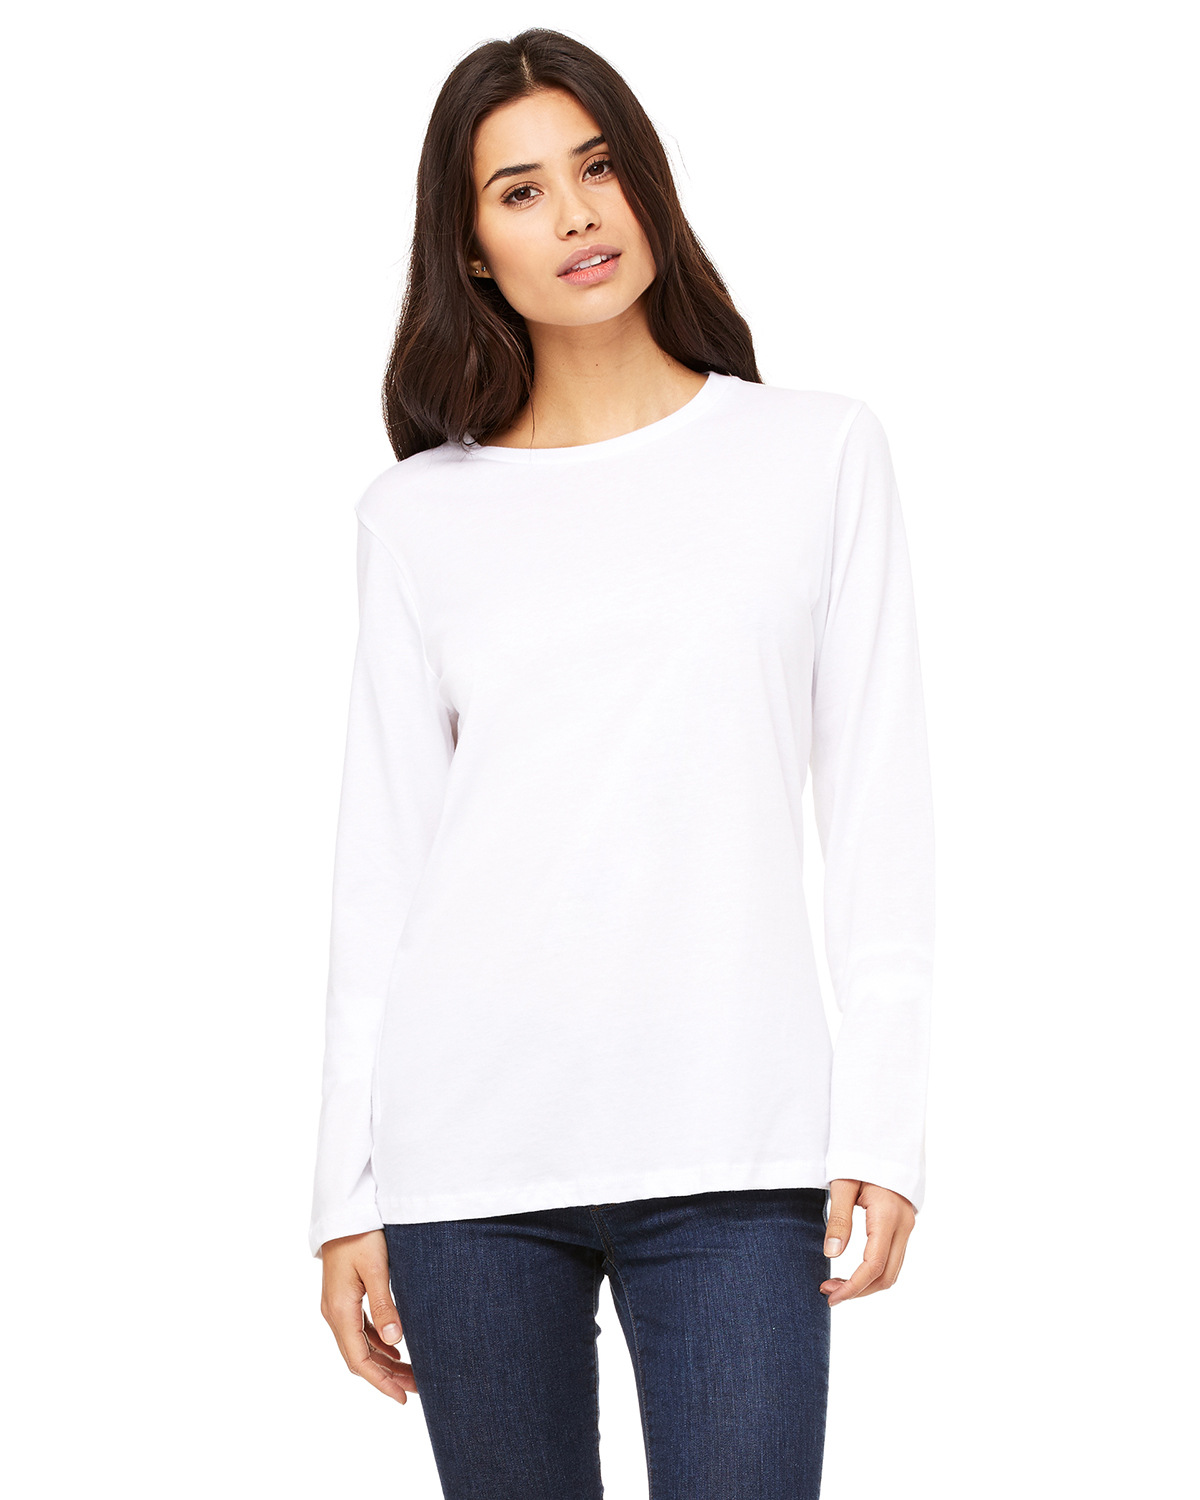 Bella + Canvas B6450 Ladies Relaxed Jersey Long-Sleeve T-Shirt